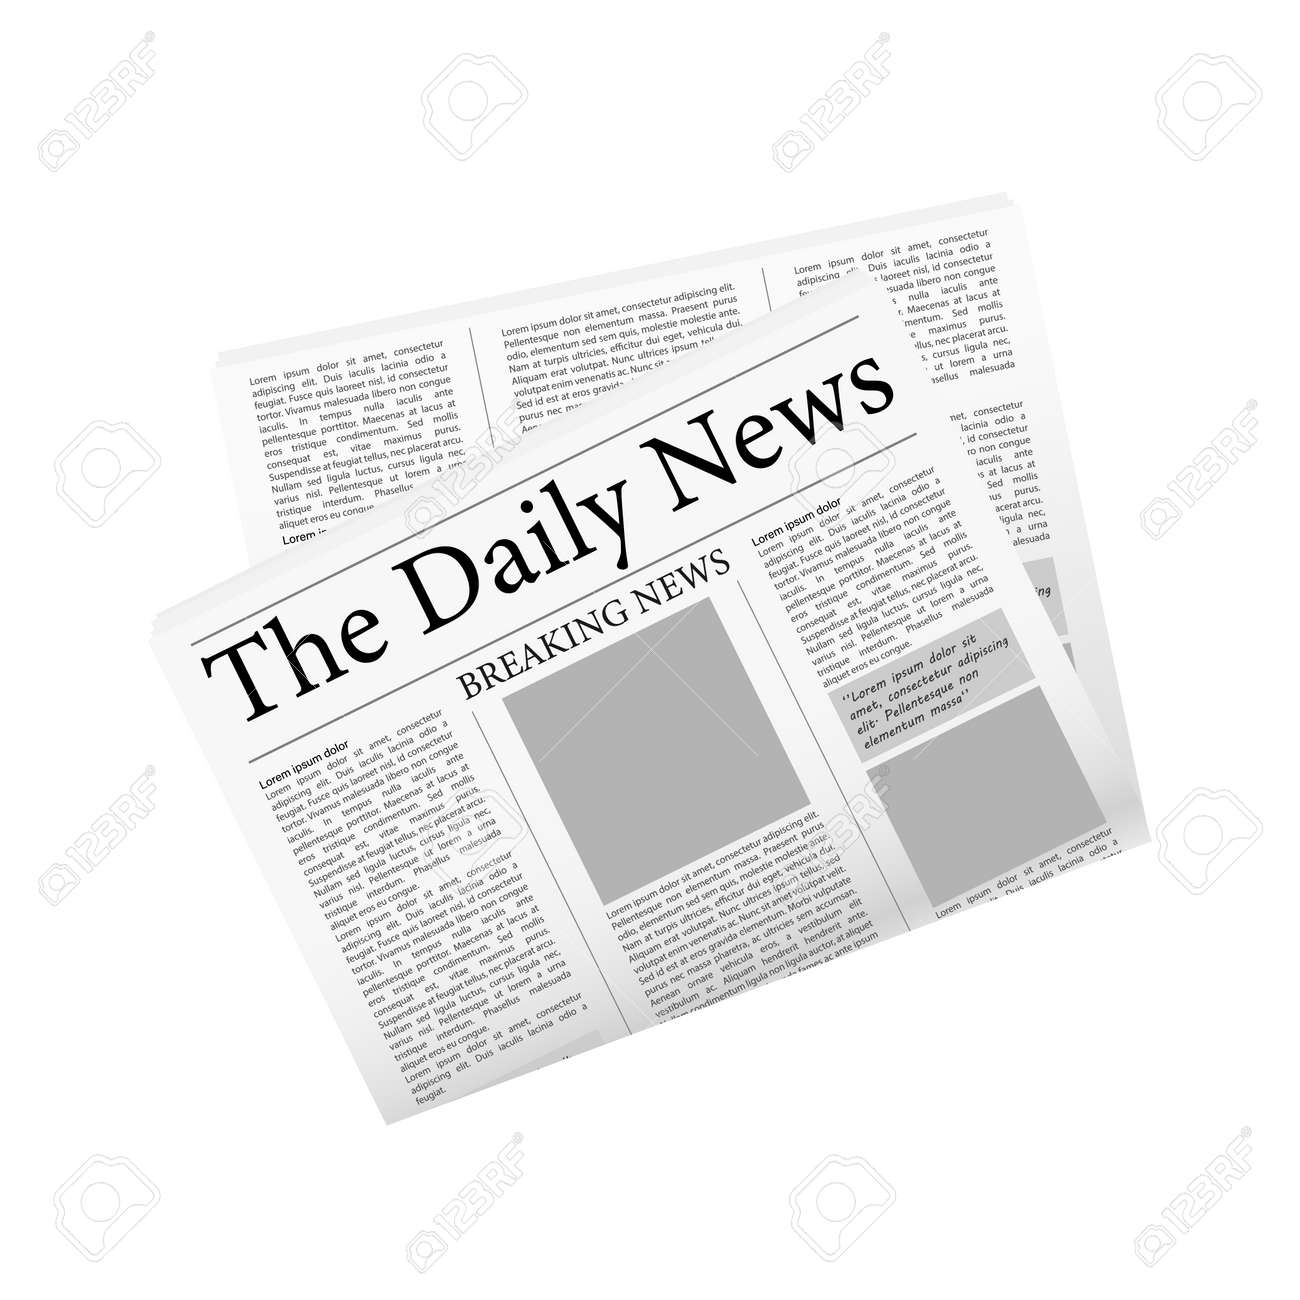 Newspaper, great design for any purposes. editorial print layout. Newspaper template. Daily press empty paper journal mockup - 155701538